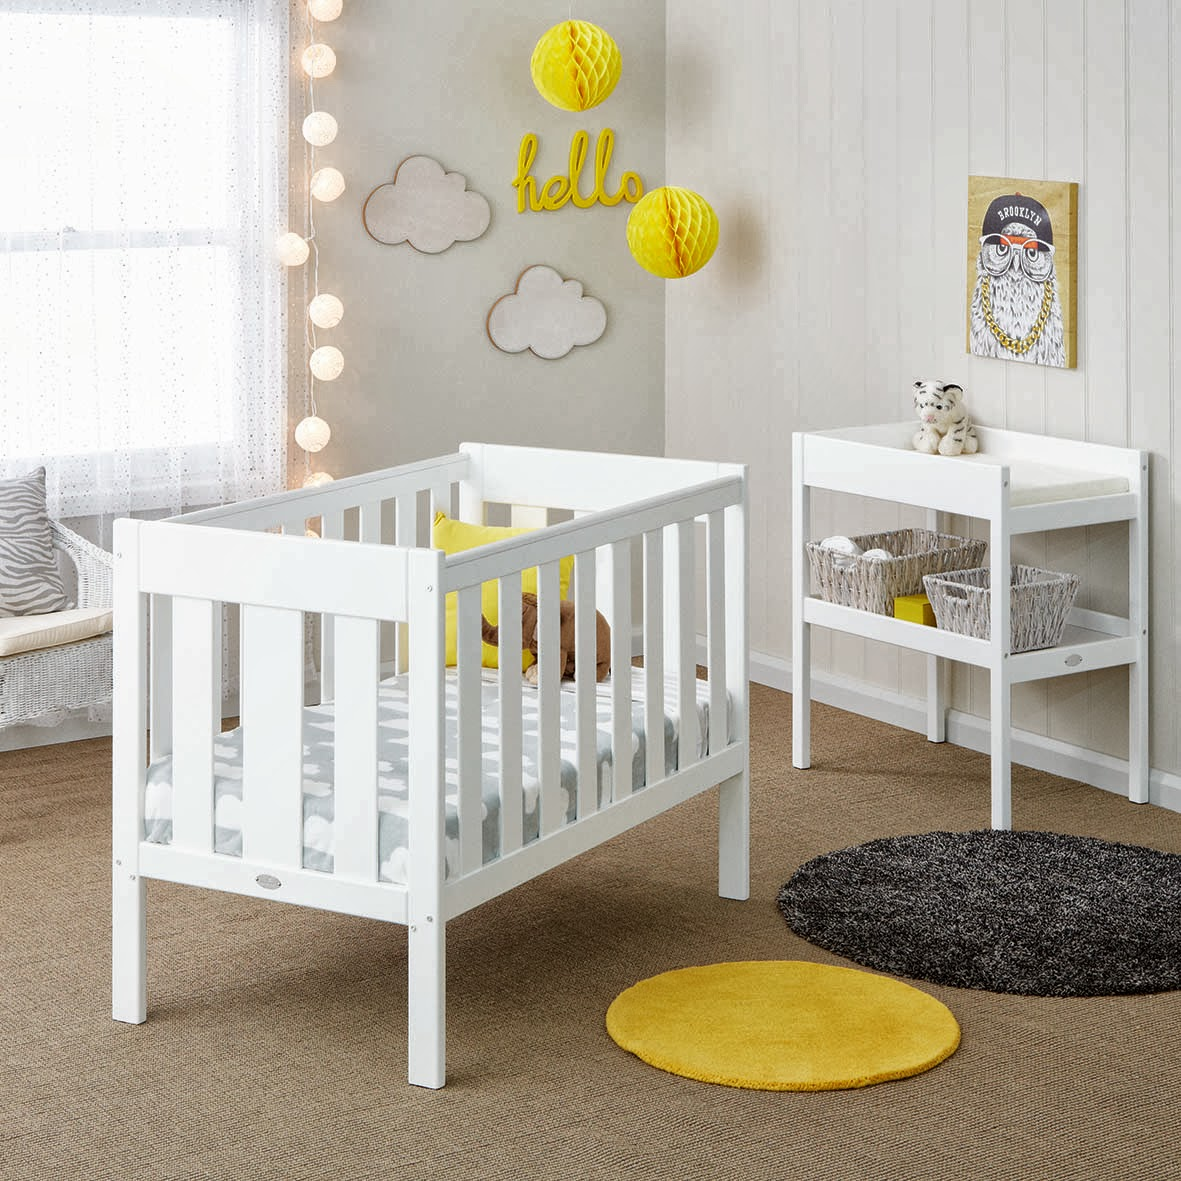 The Le Cot And Winnie Change Table Part Of New Nursery Furniture Range Accessories From Fantasticfurniture Au